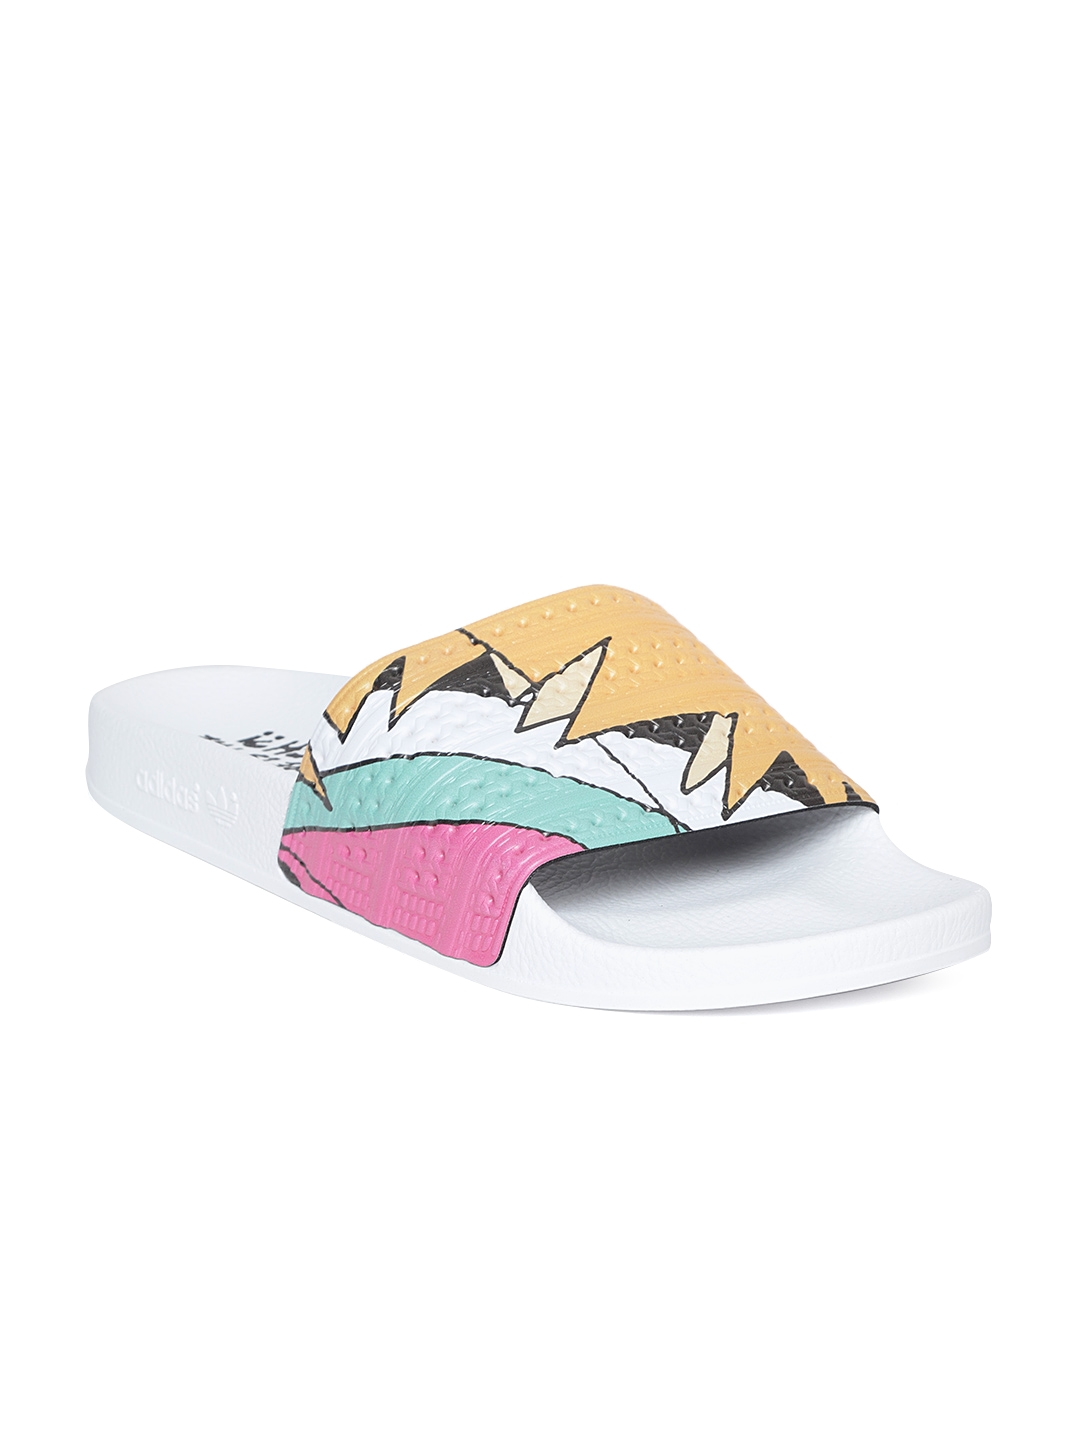 5fe3b7a7e7a15d Buy ADIDAS Originals Men White   Mustard Printed Sliders - Flip ...